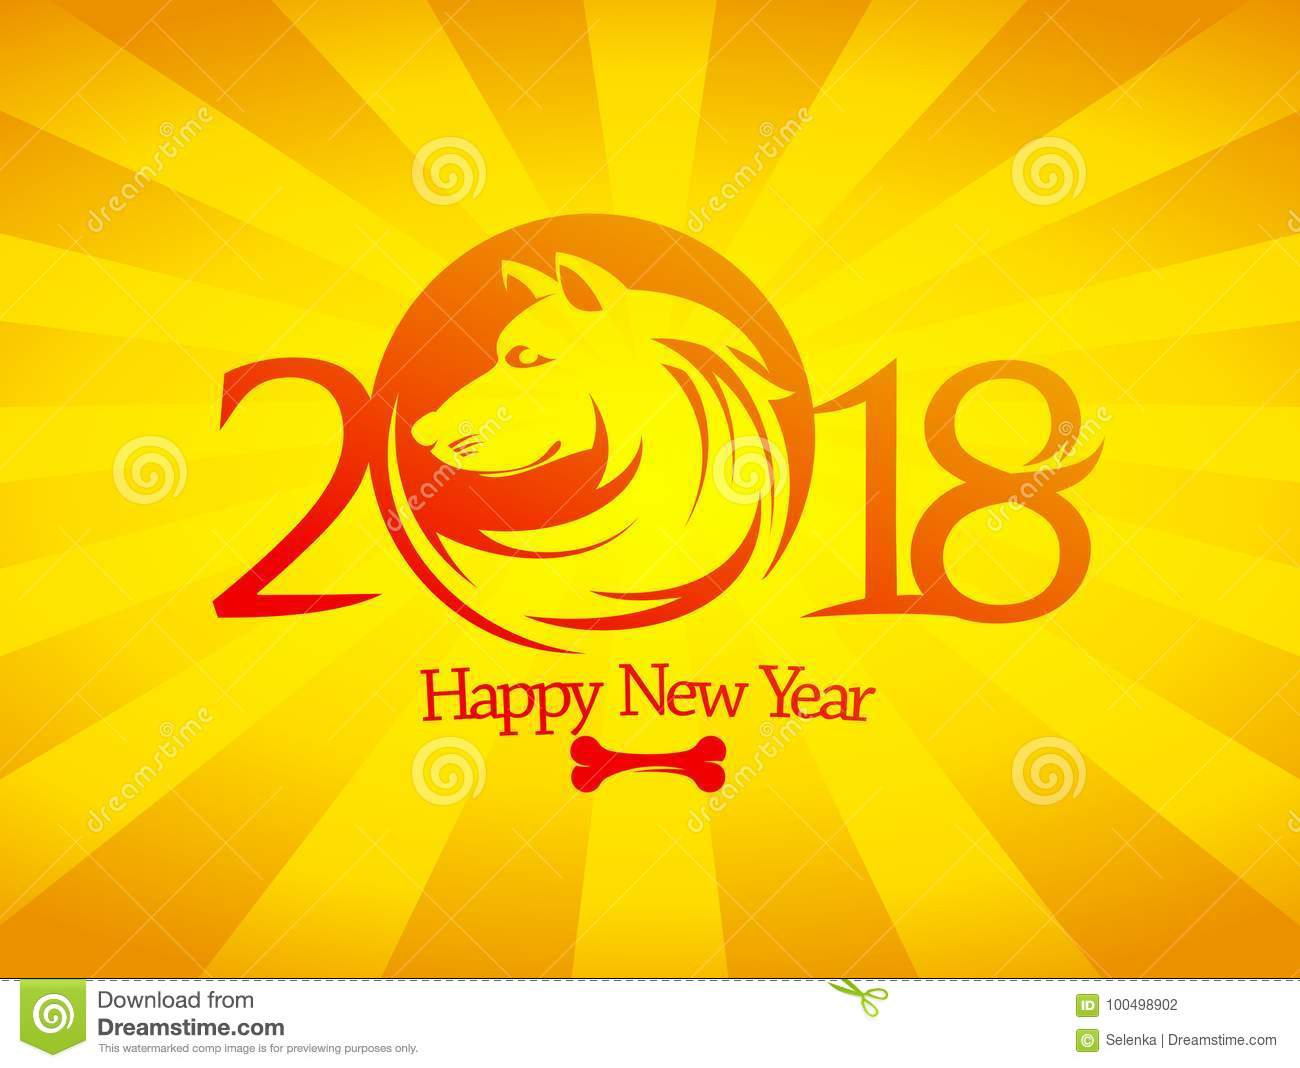 2018 happy new year card or invitation card design concept